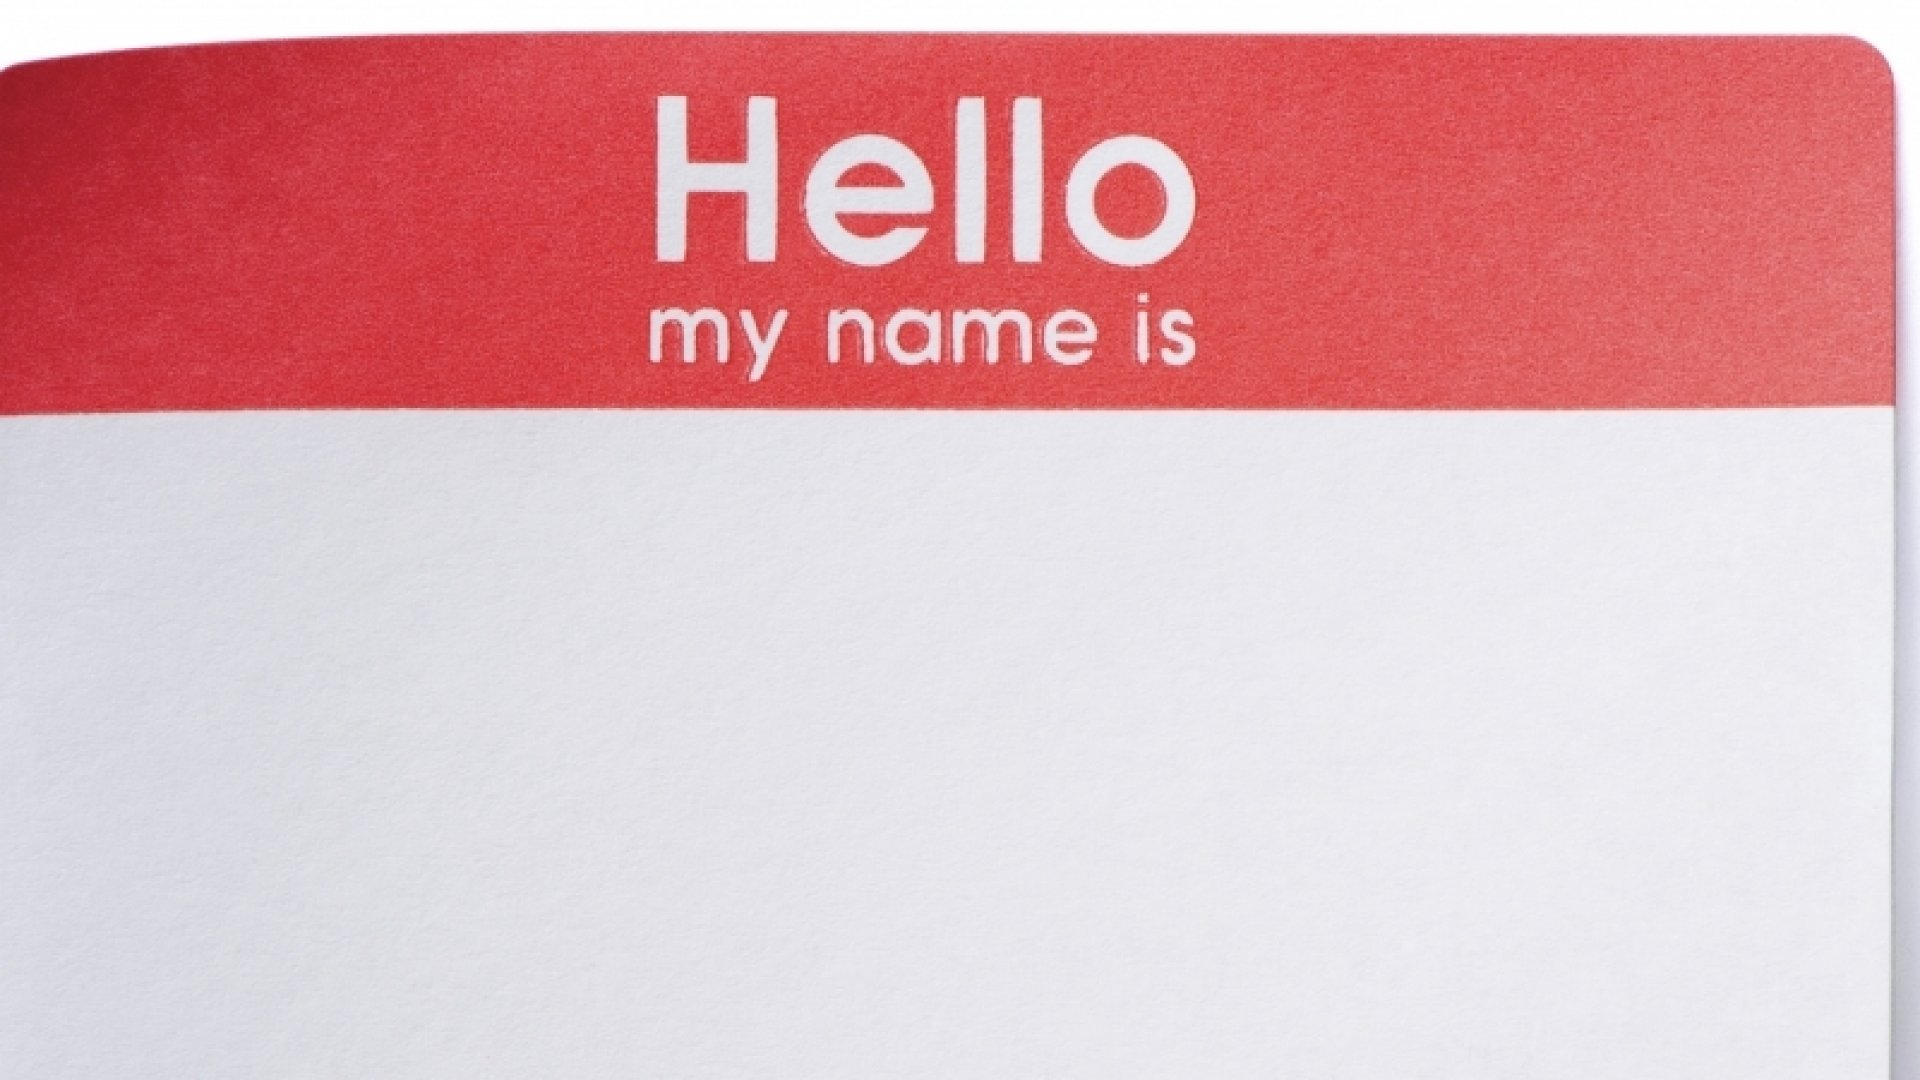 6 Surprisingly Powerful Ways To Use Employee Titles